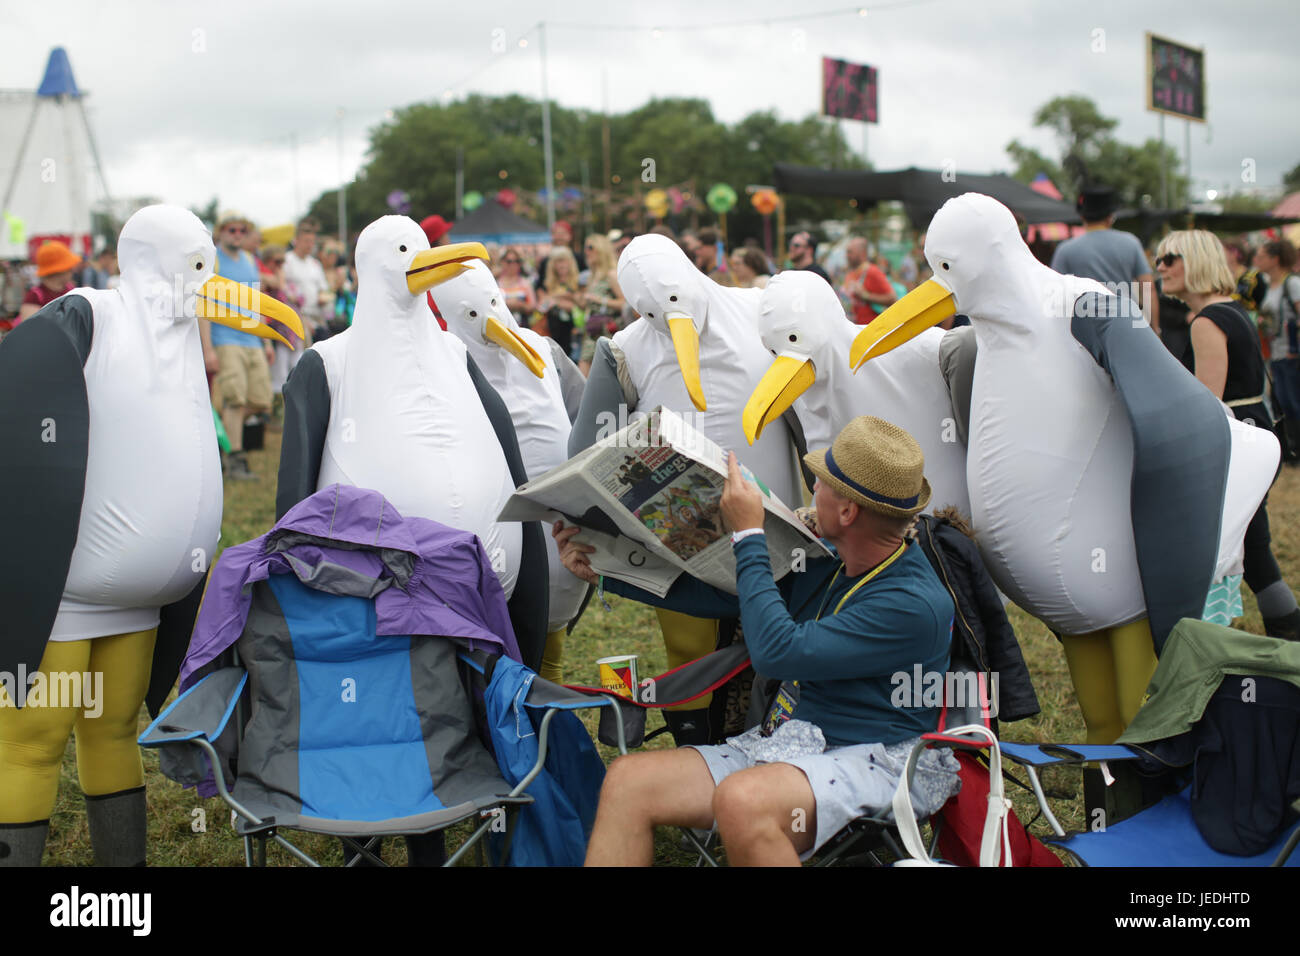 a69a399ad3 Festival goers in fancy dress on Day 2 (Saturday) of the 2017 Glastonbury  Festival at Worthy Farm in Somerset. Photo date  Saturday